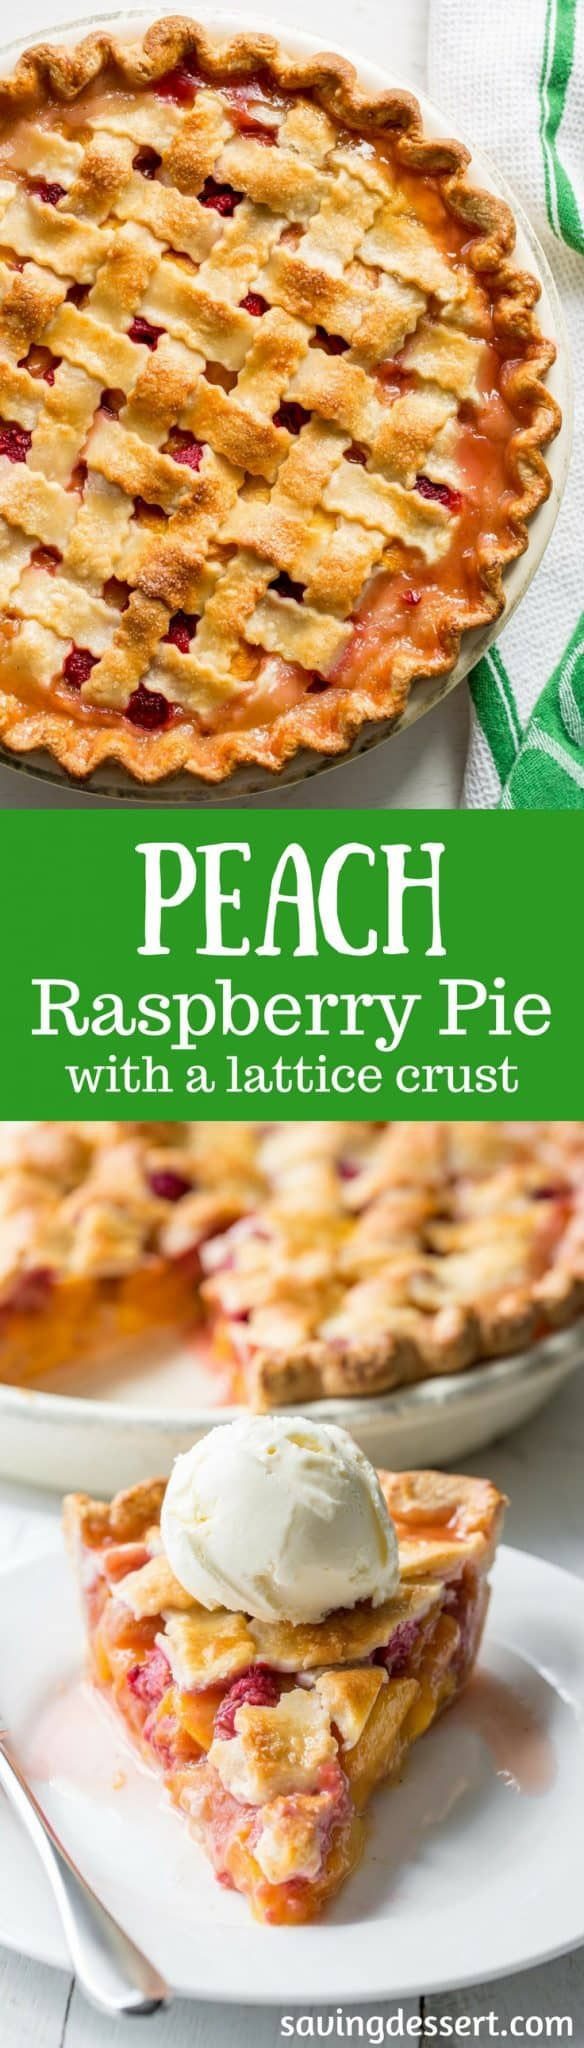 Peach Raspberry Pie with a Lattice Crust ~ juicy, sweet summer peaches are combined with tart raspberries for a wonderful seasonal dessert.  Topped with a flaky, pretty, lattice weaved crust, this pie is a family favorite! www.savingdessert.com #savingroomfordessert #pie #peachpie #raspberrypie #latticecrust #dessert